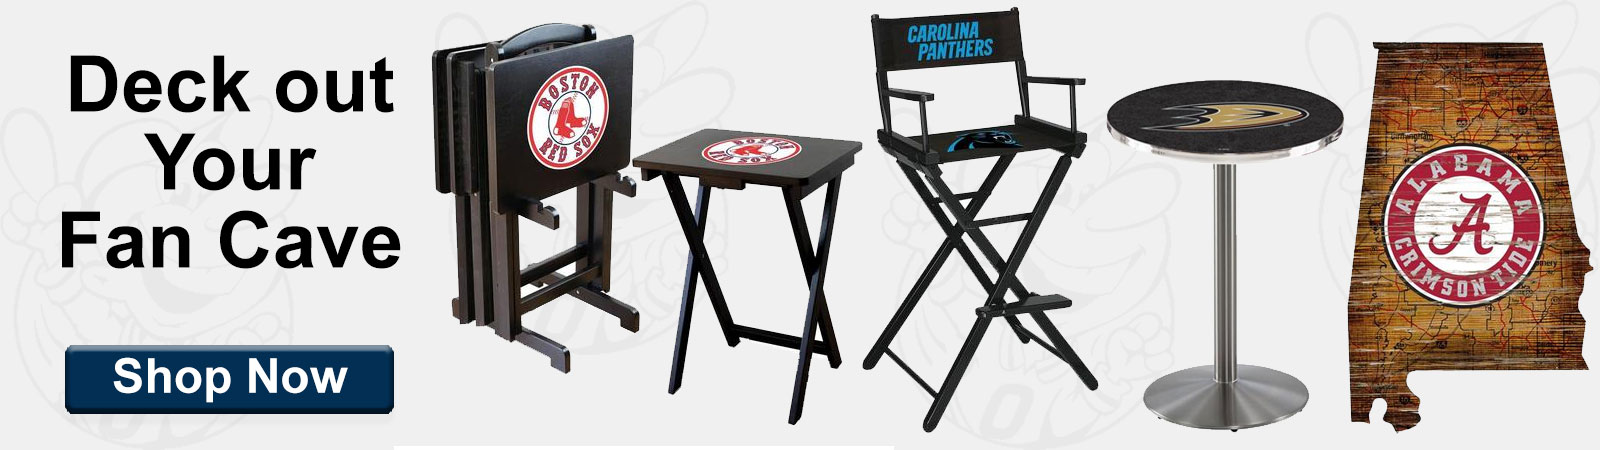 Deck out your fancave with your favorite team's memorabilia!